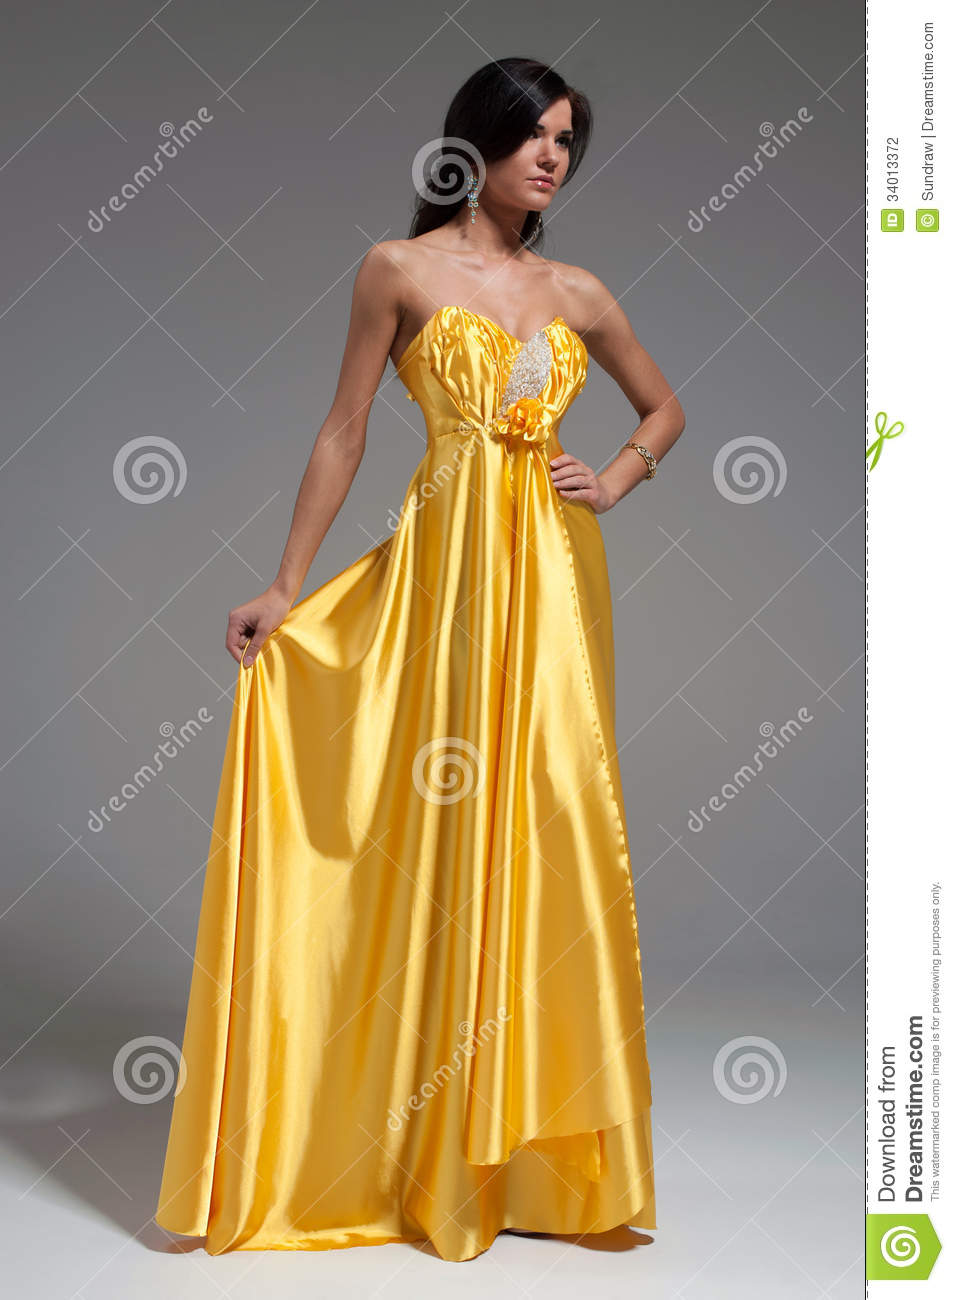 Woman In Golden Yellow Dress Stock Photography - Image: 34013372